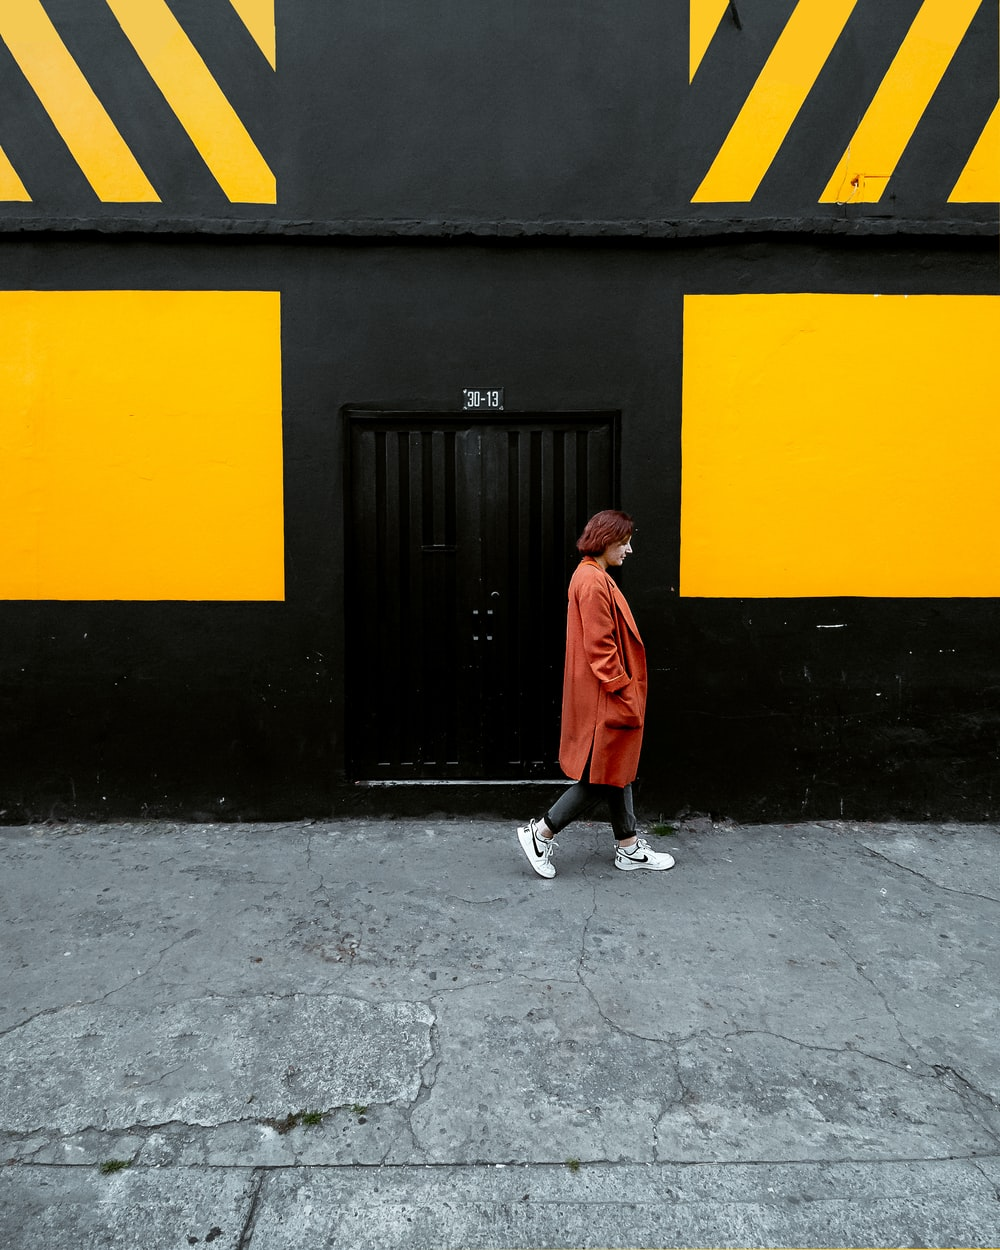 woman walking beside black and yellow building during daytime